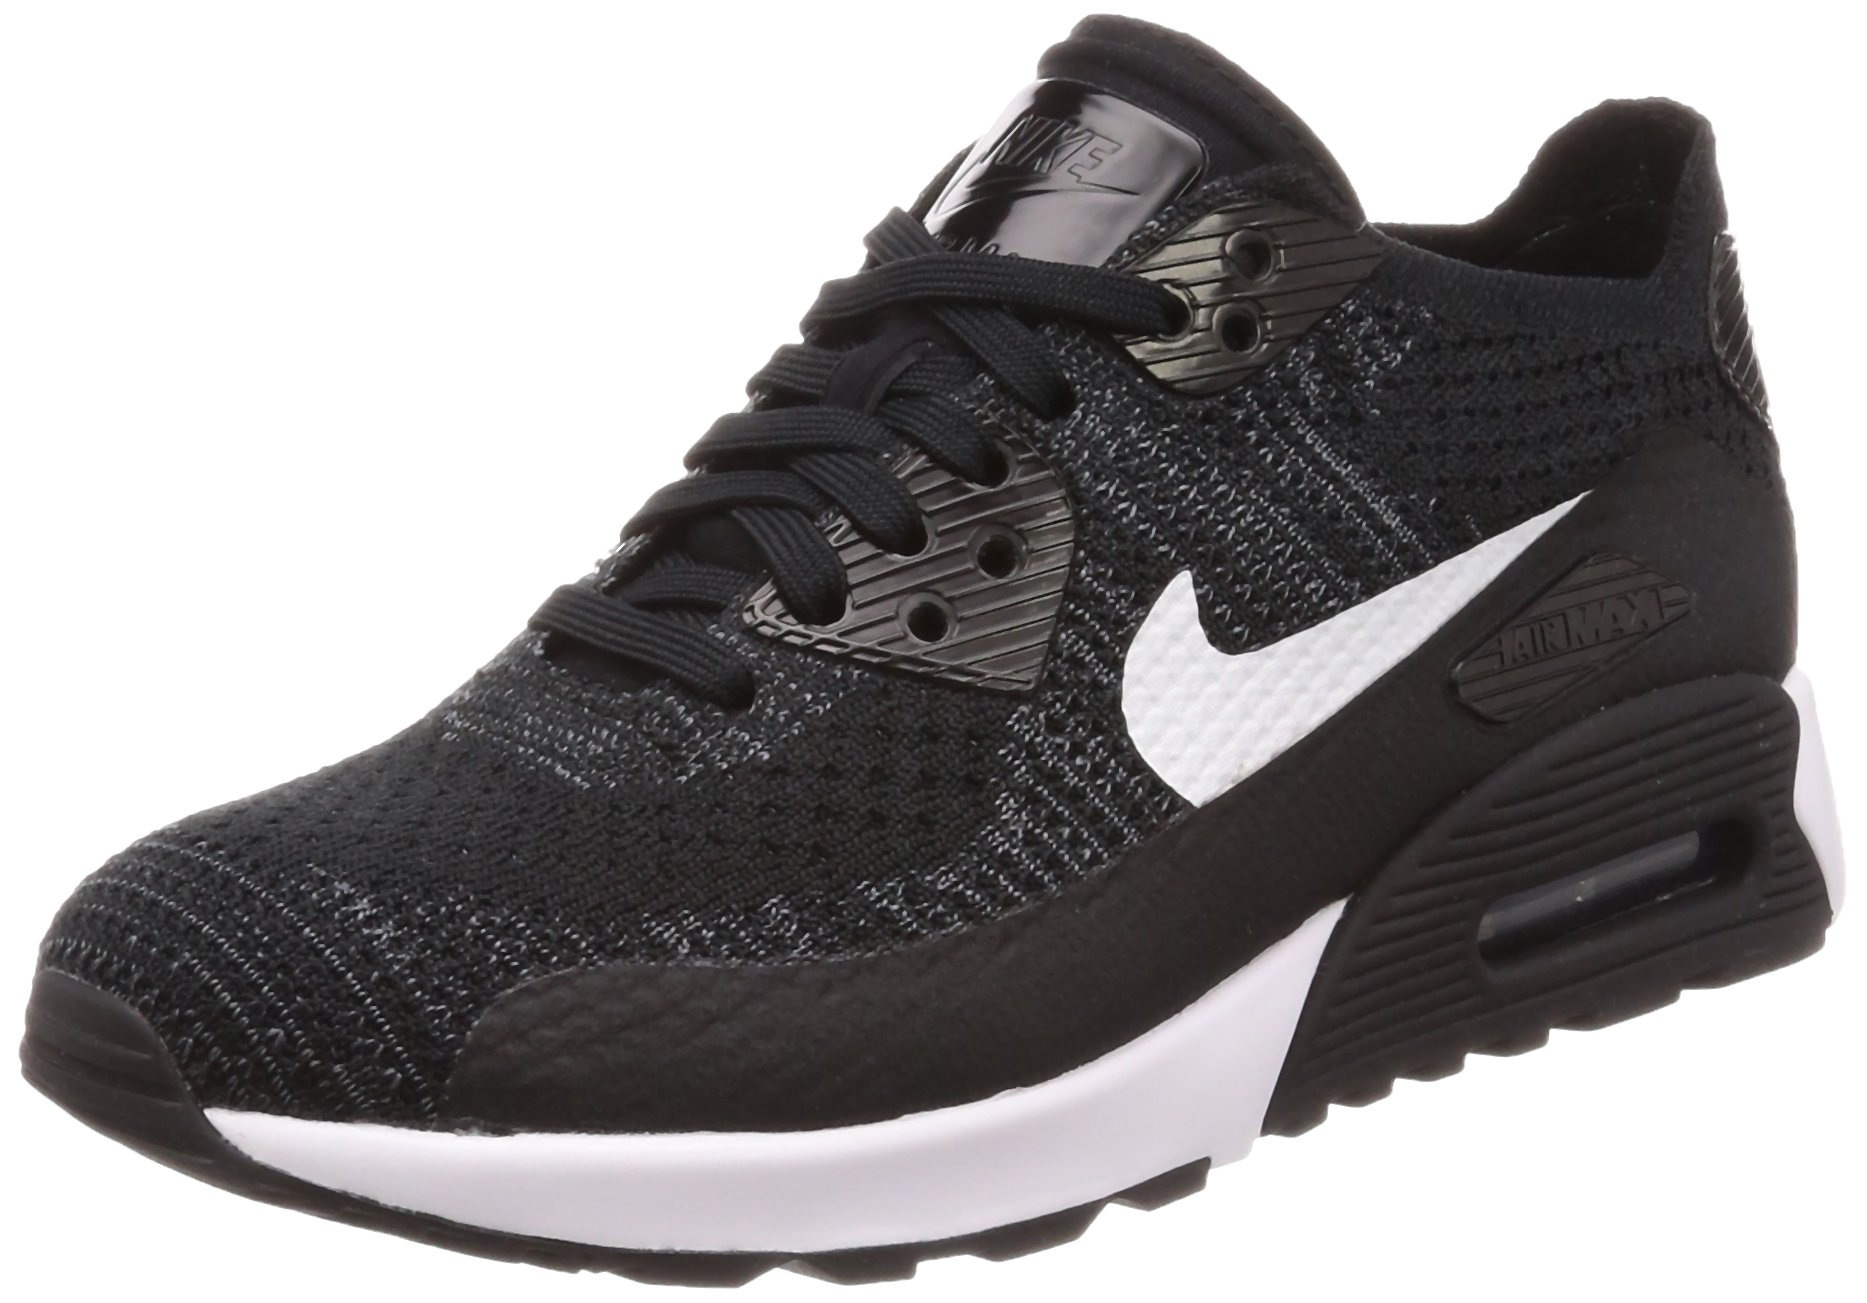 buy popular bc2c8 82ad6 Galleon - NIKE Women s Air Max 90 Ultra 2.0 Flyknit Black White 881109-004  (Size  6)